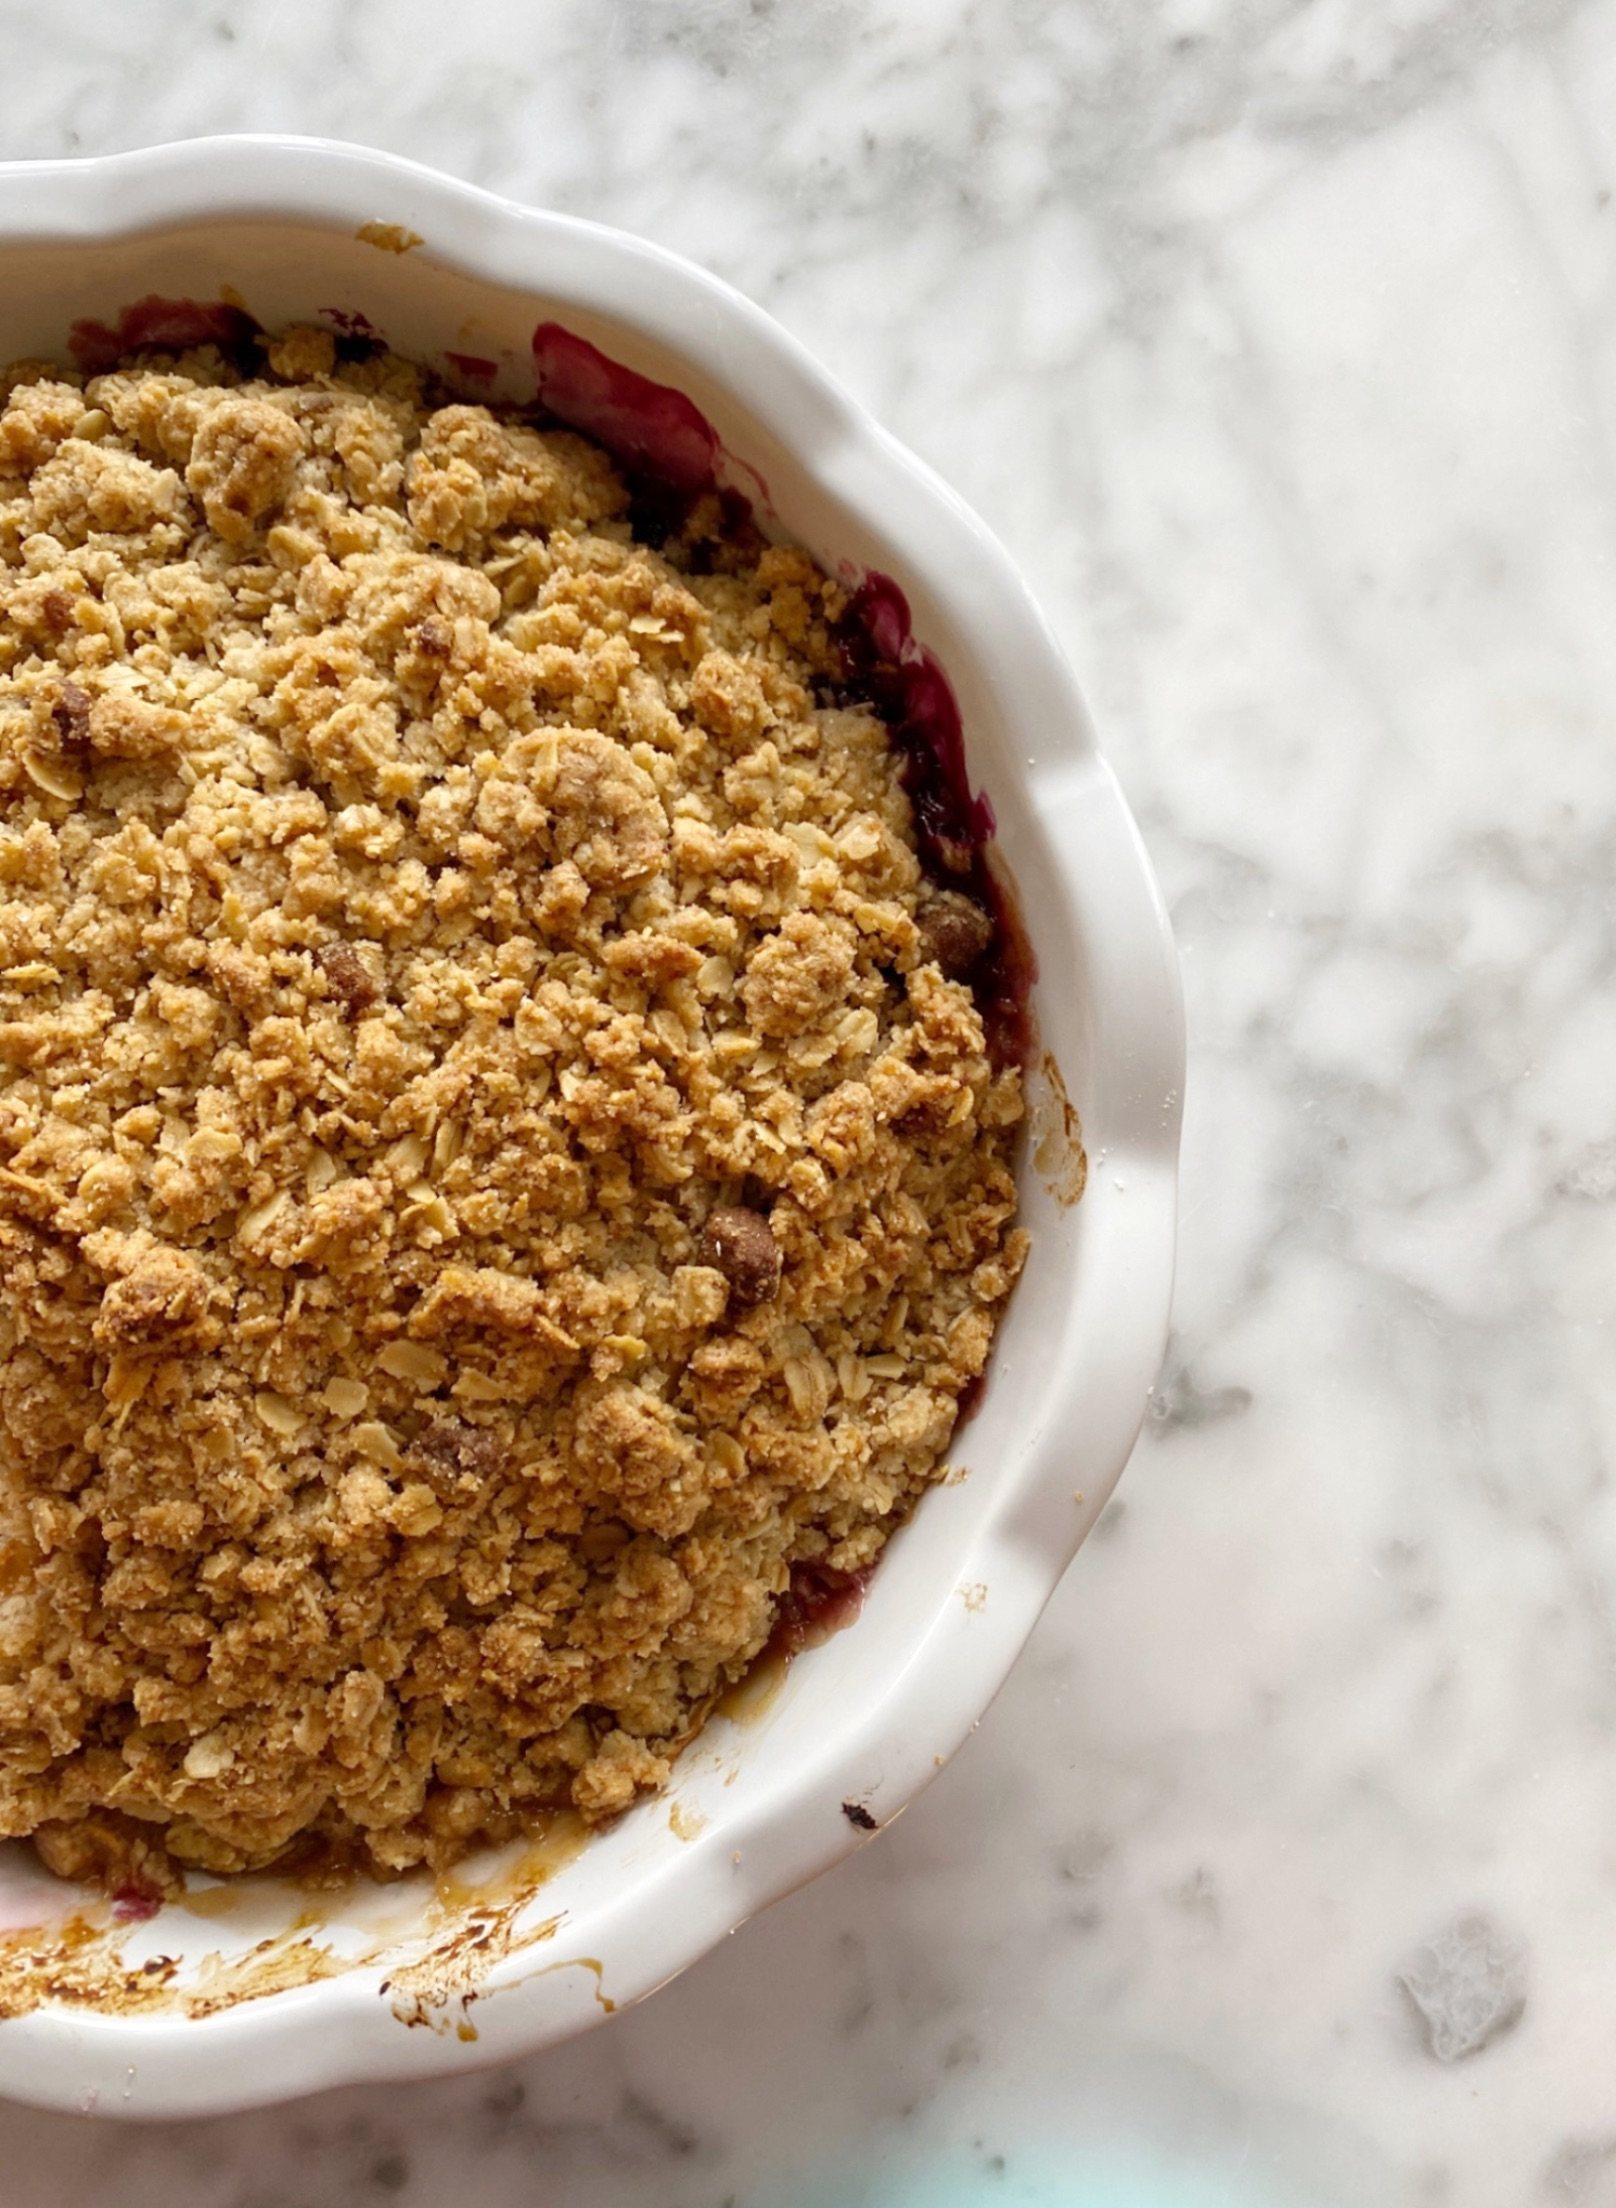 PEACH, PLUM + BLUEBERRY CRUMBLE